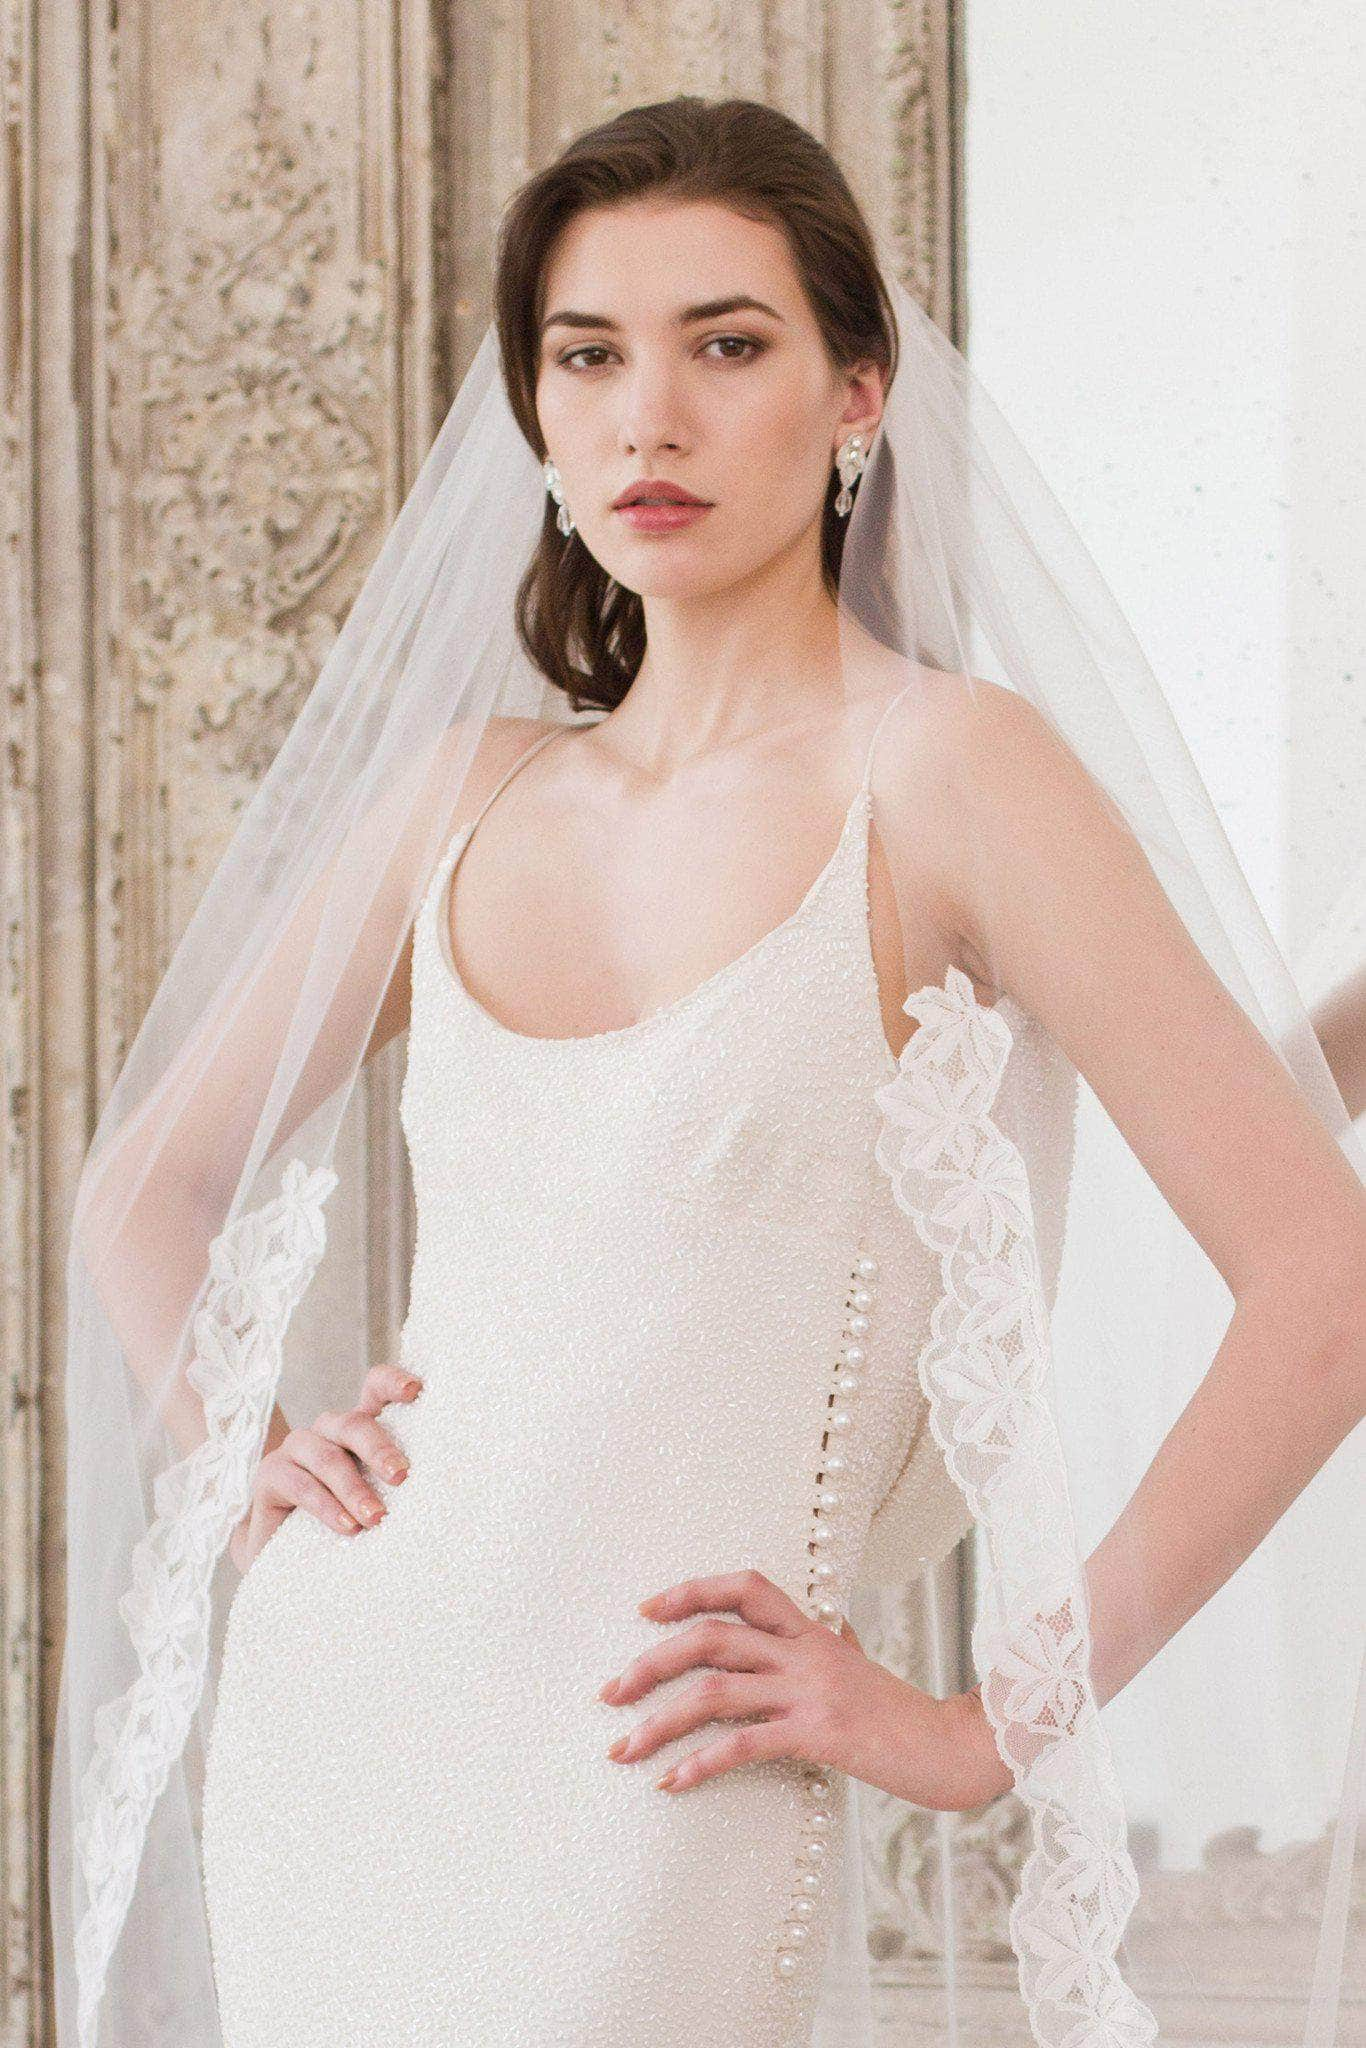 Wedding Veil Semi lace edged wedding veil - 'Calleva'